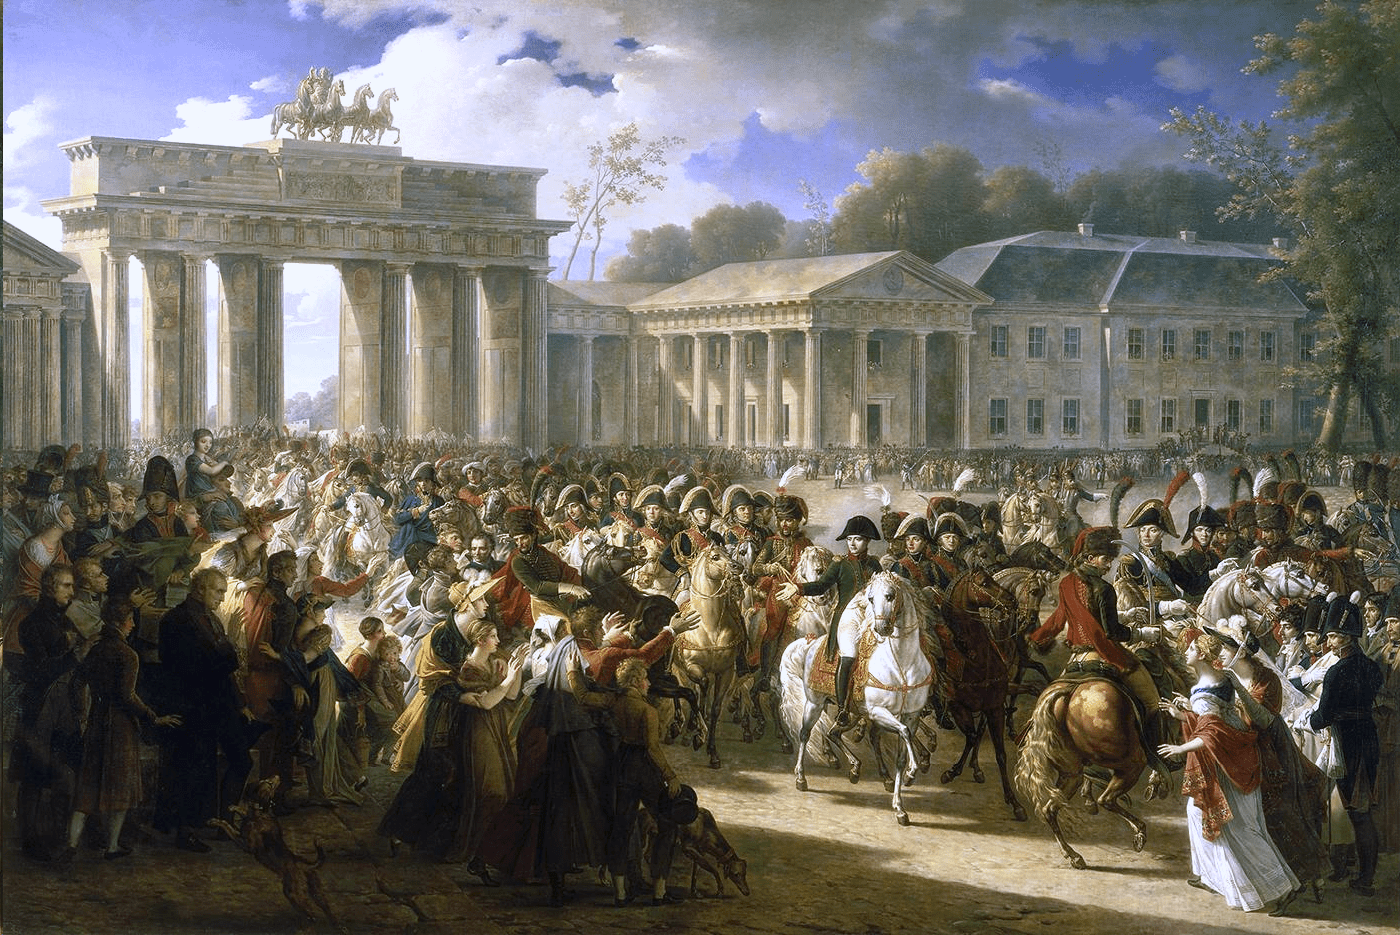 Napoleon in Berlin. After defeating Prussian forces at Jena, the French Army entered Berlin on 27 October 1806.